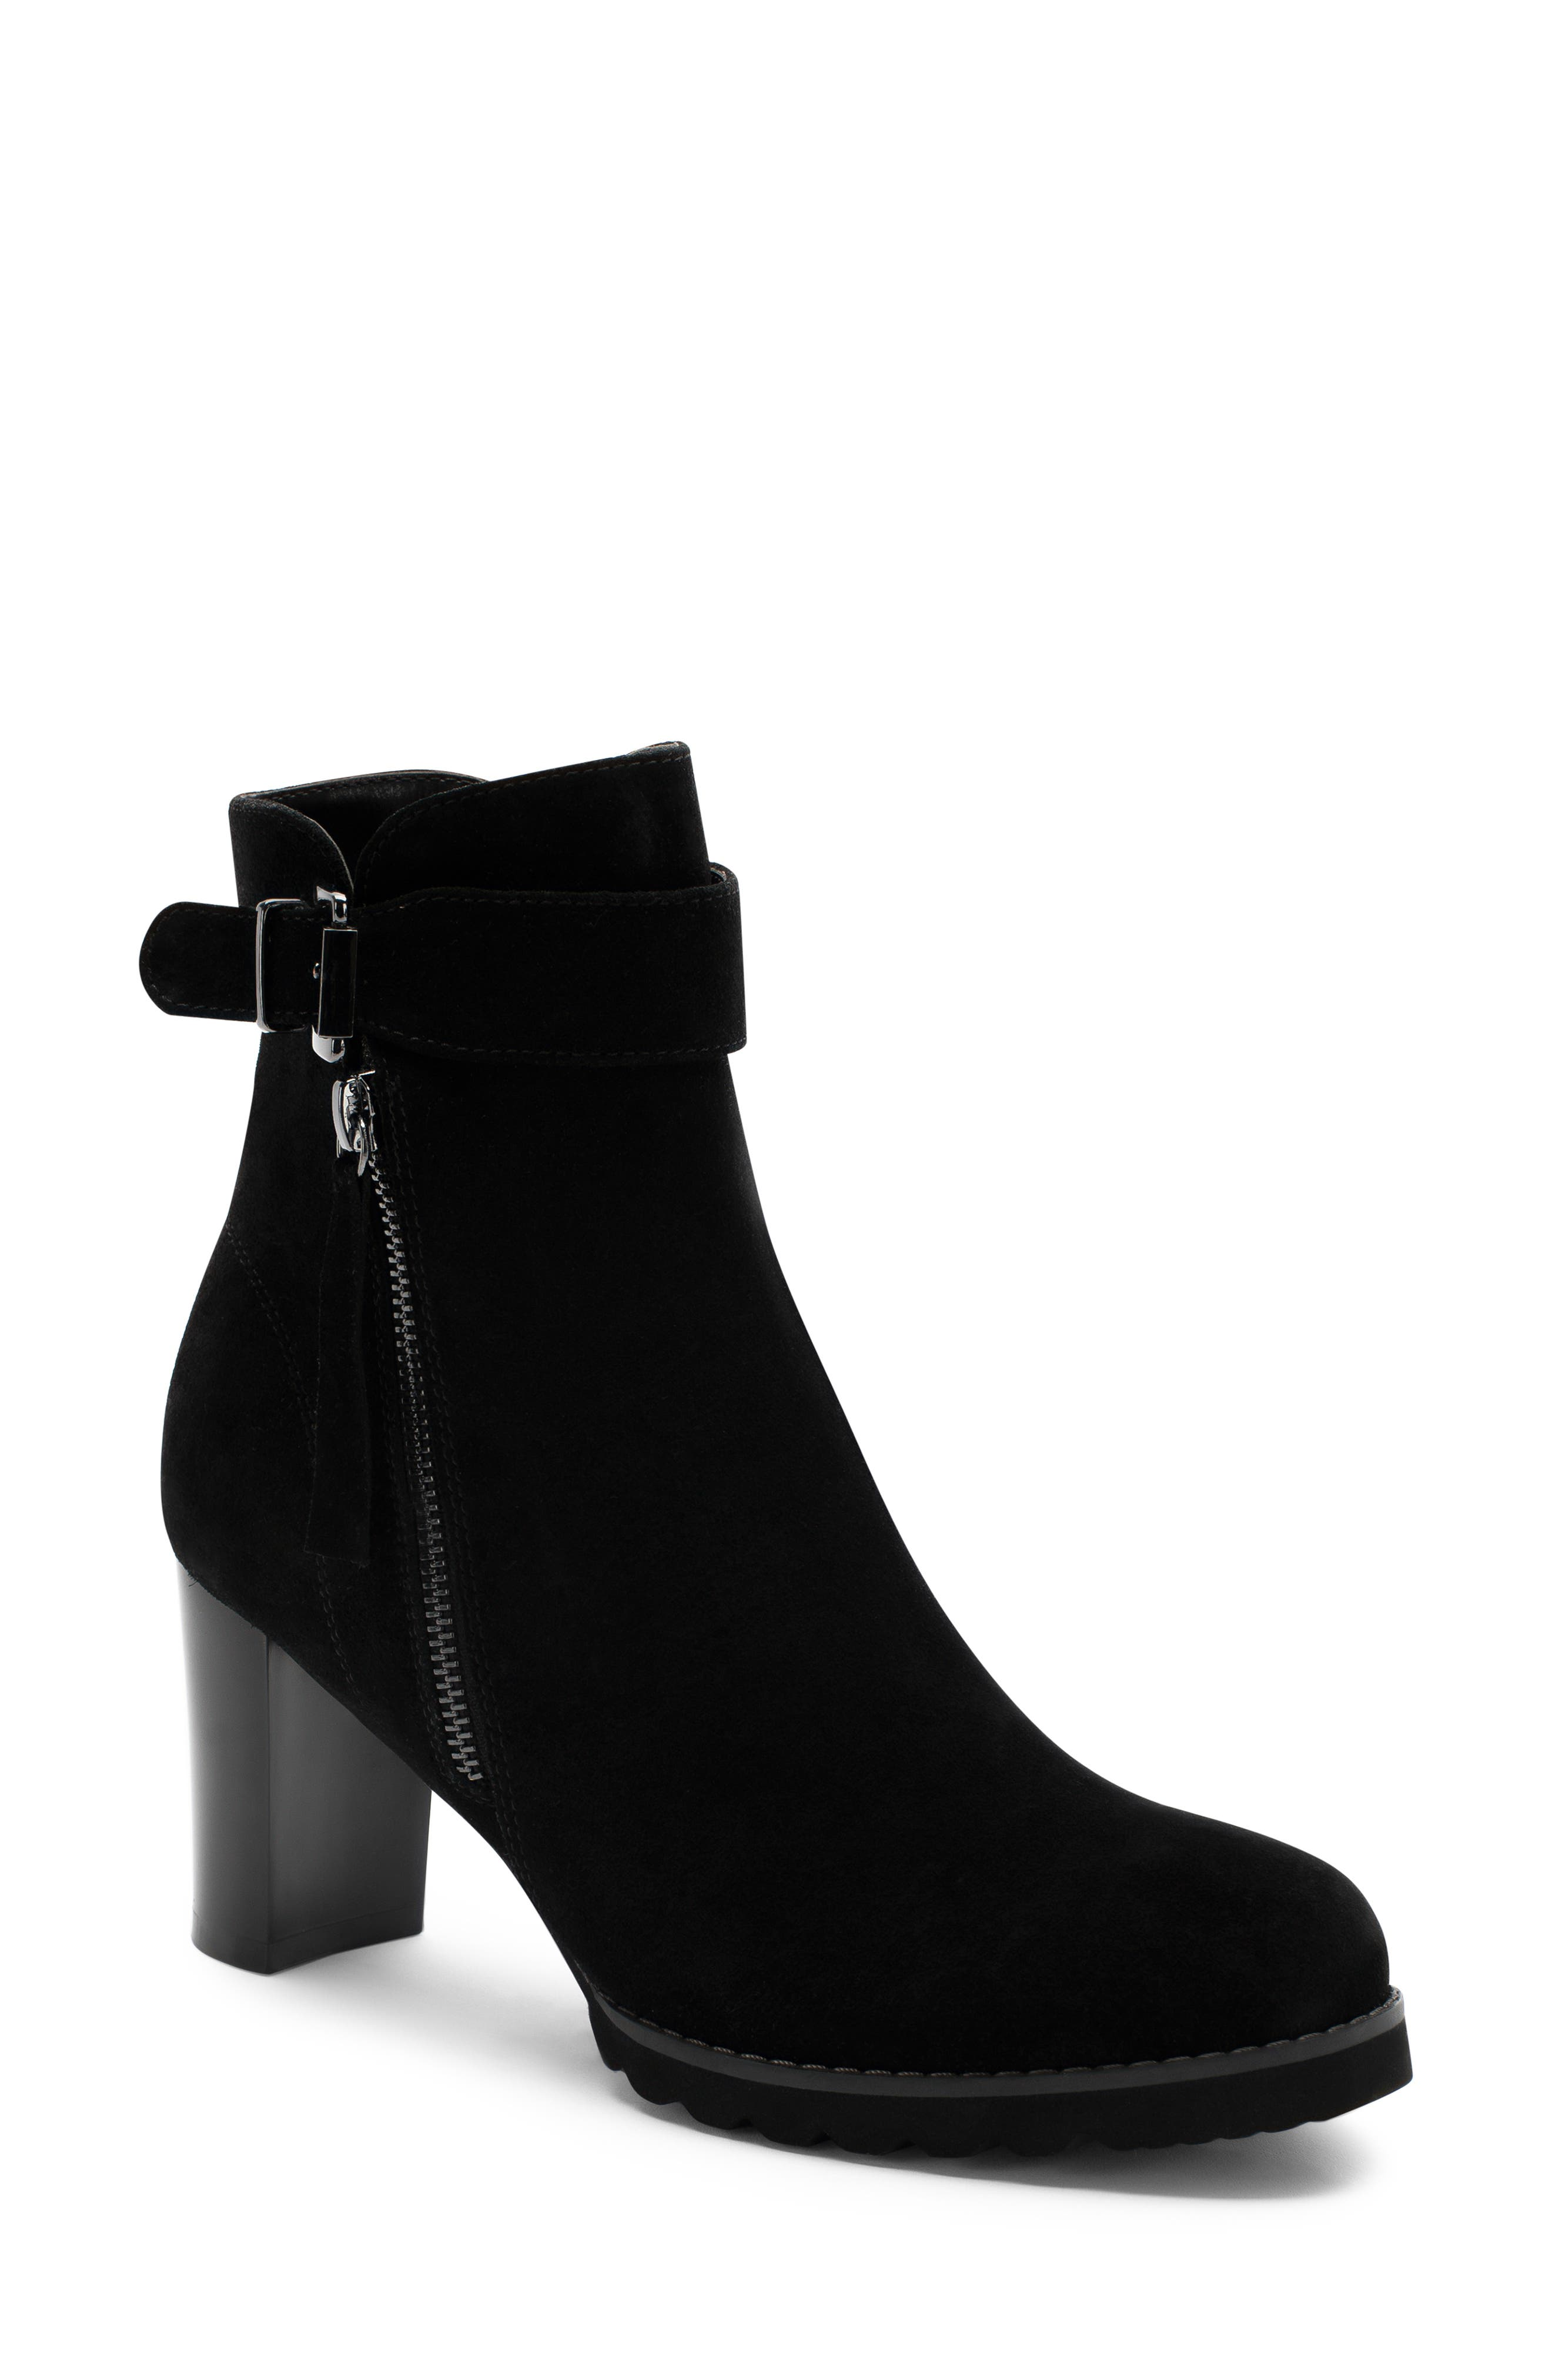 Blondo Anic Waterproof Ankle Boot, Black